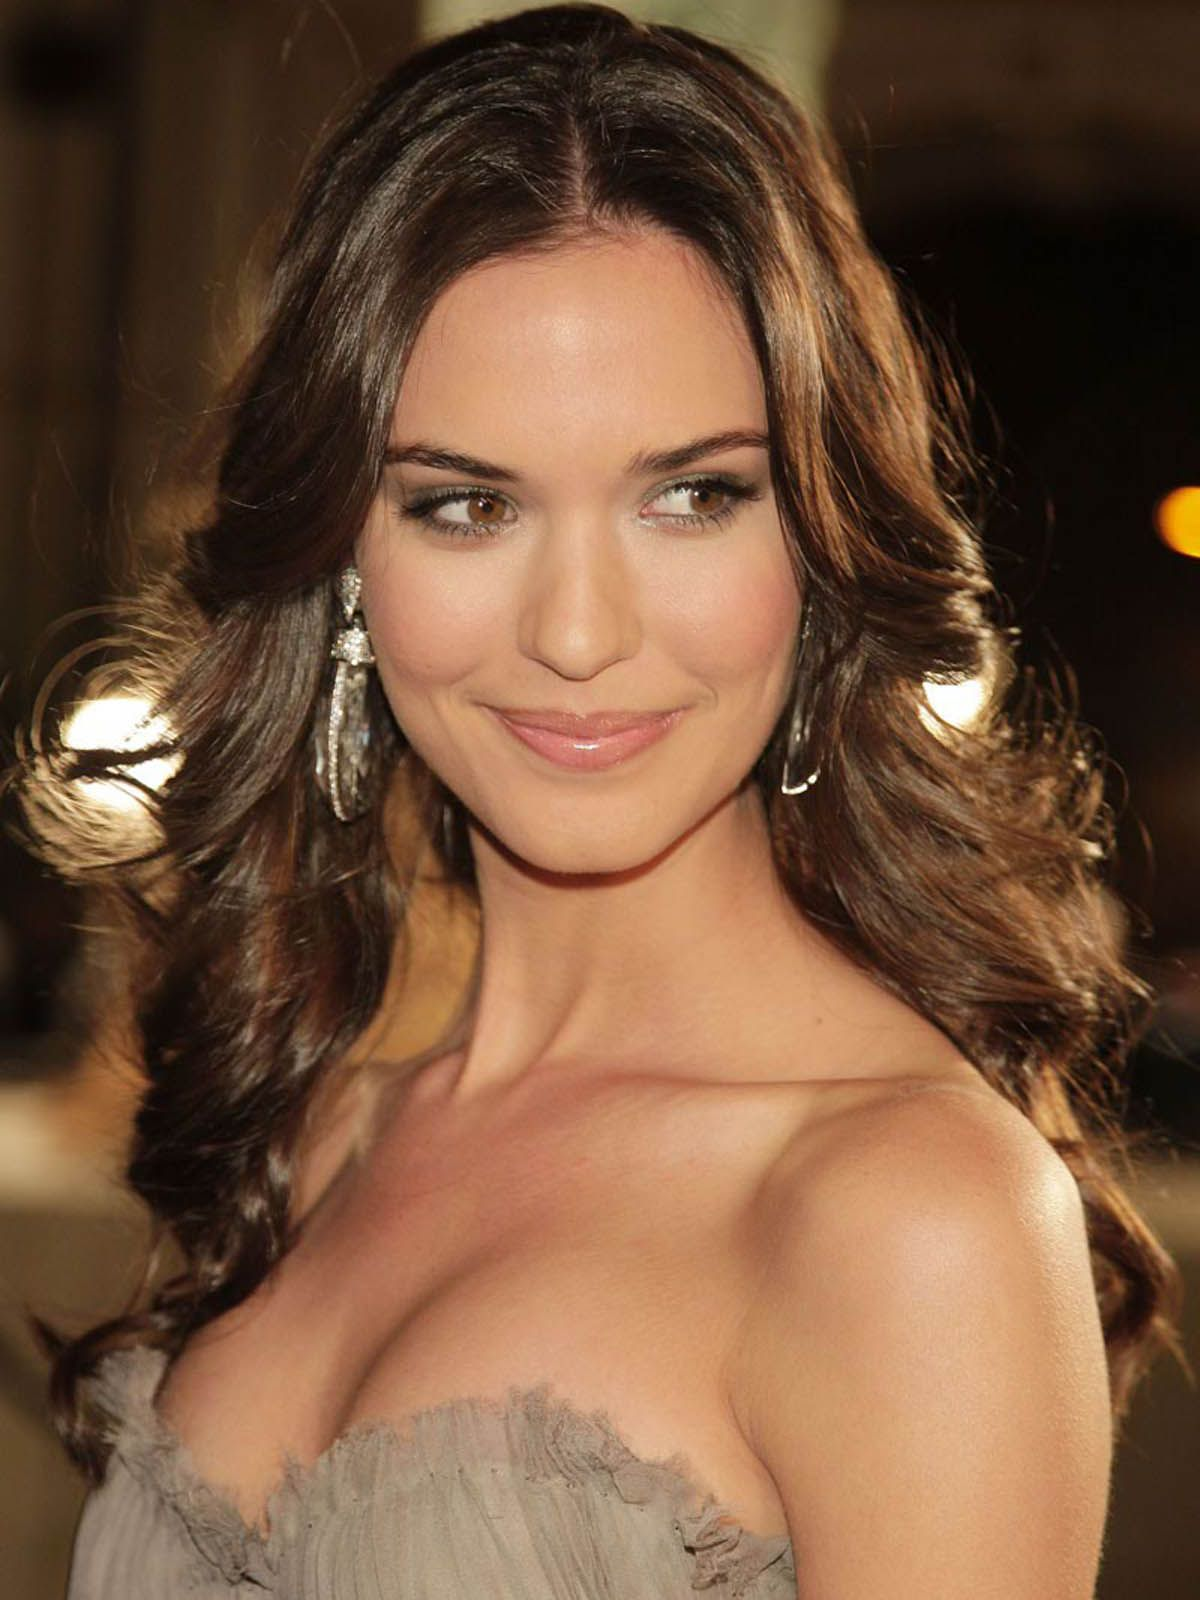 Actress Wallpapers Odette Yustman Cute Images Odette Annable Beauty Beautiful Celebrities